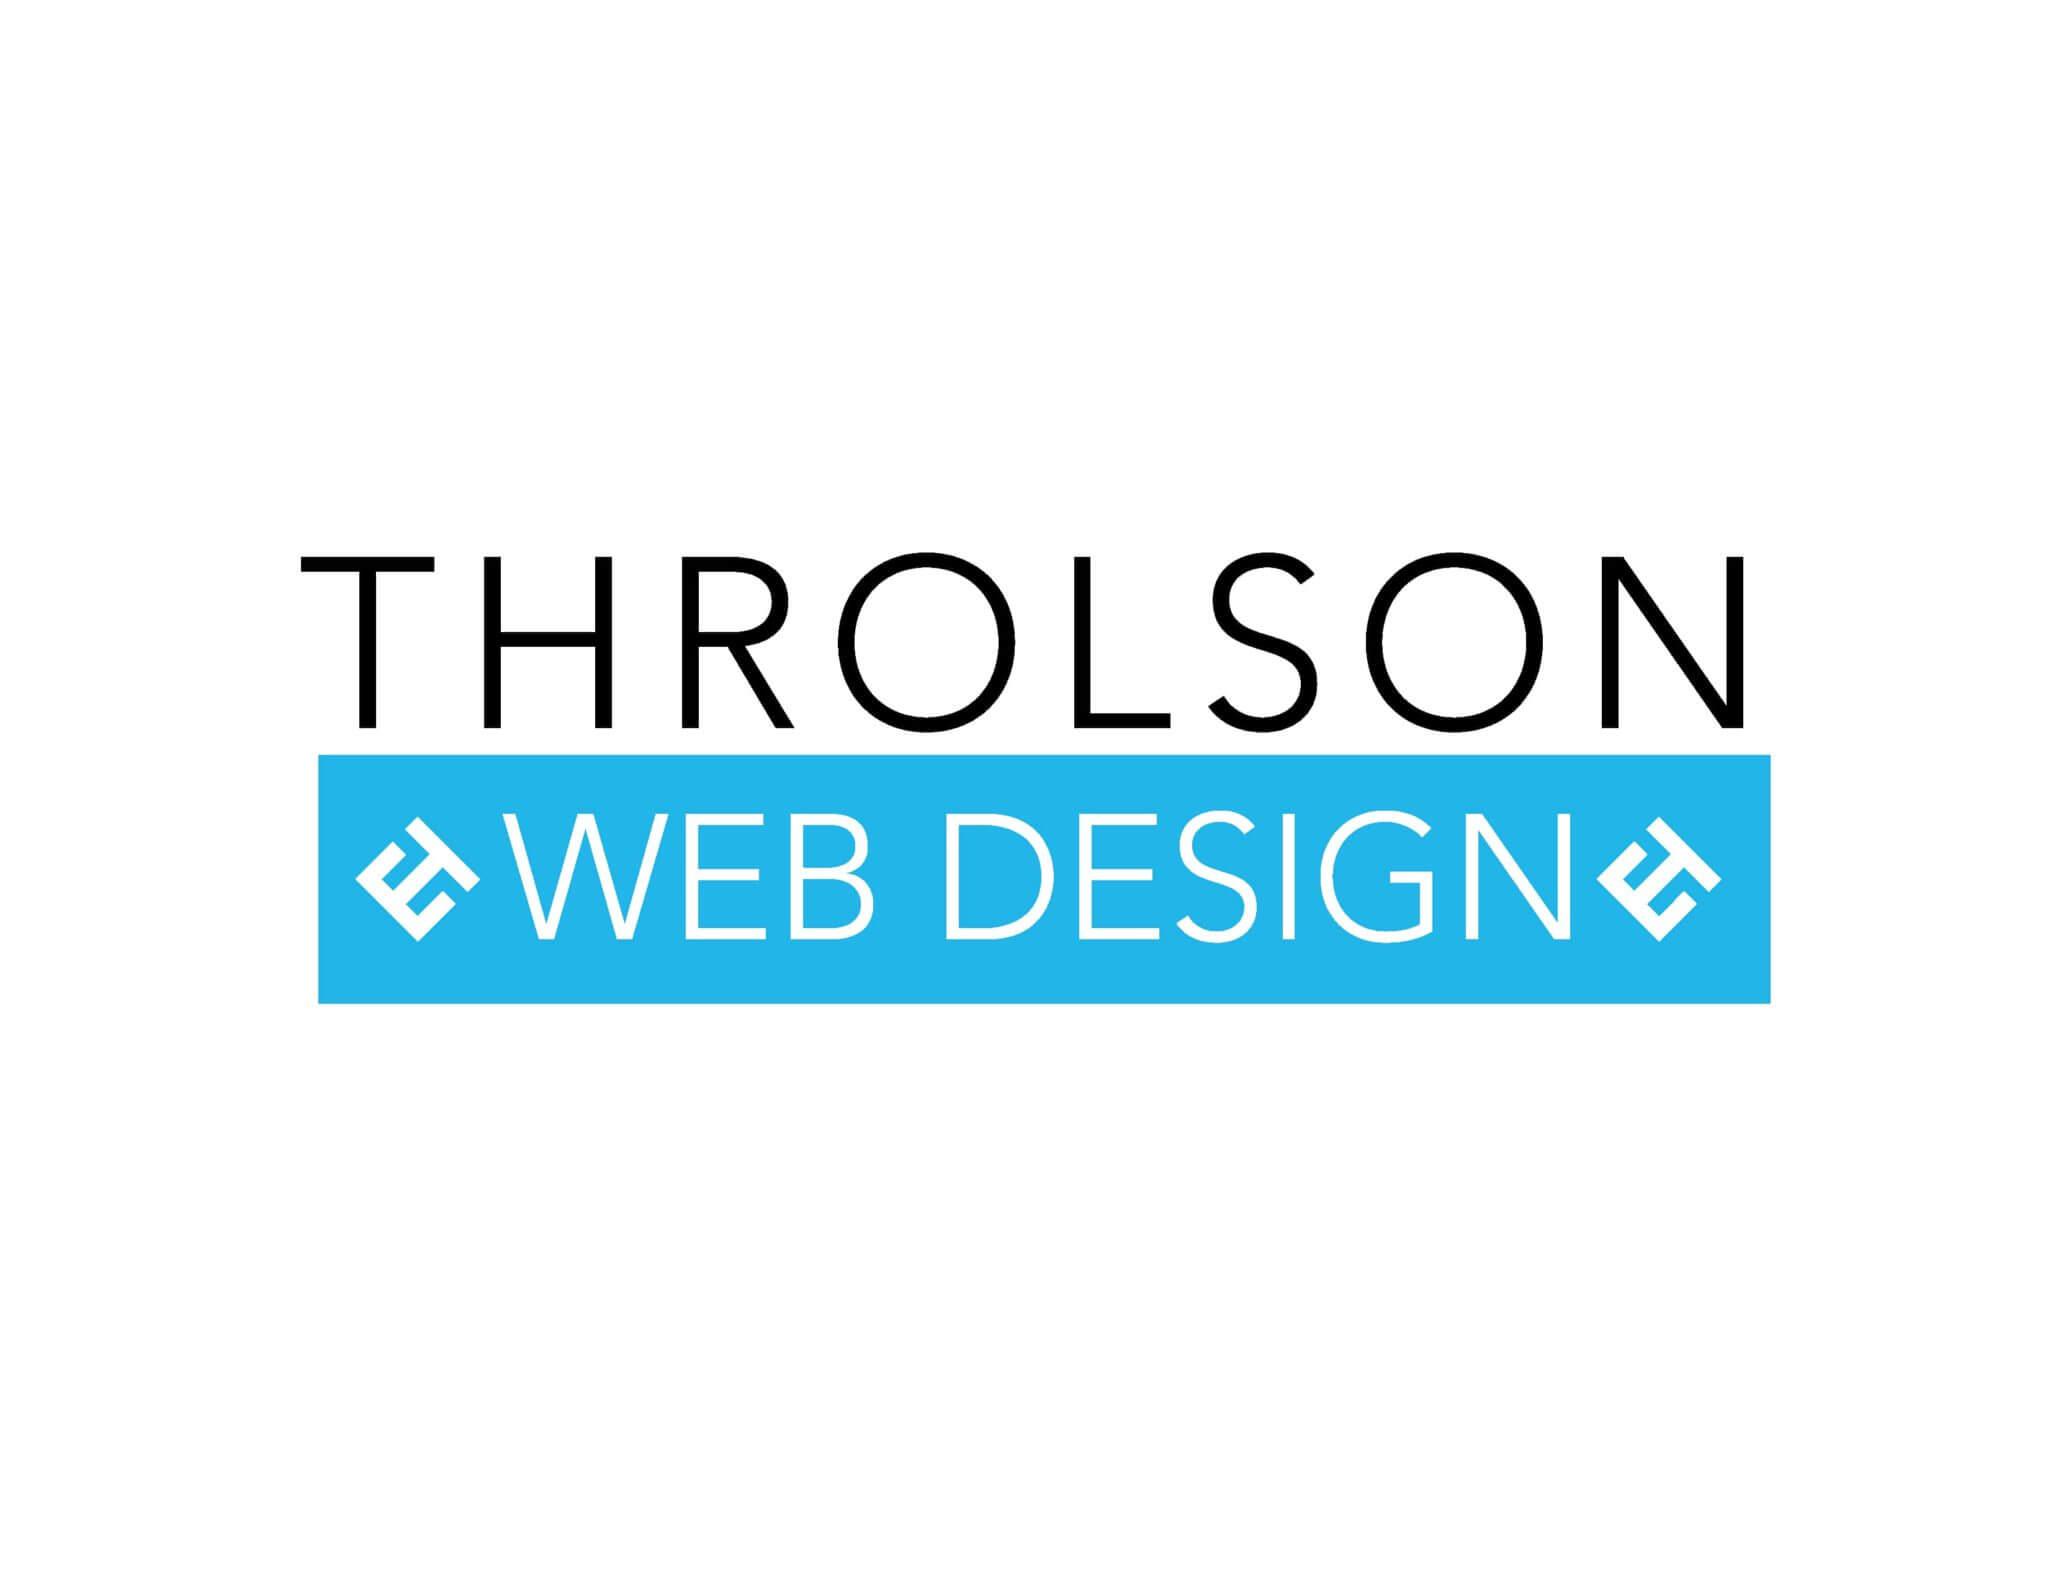 Nick Throlson Professional Word Press Web Designer